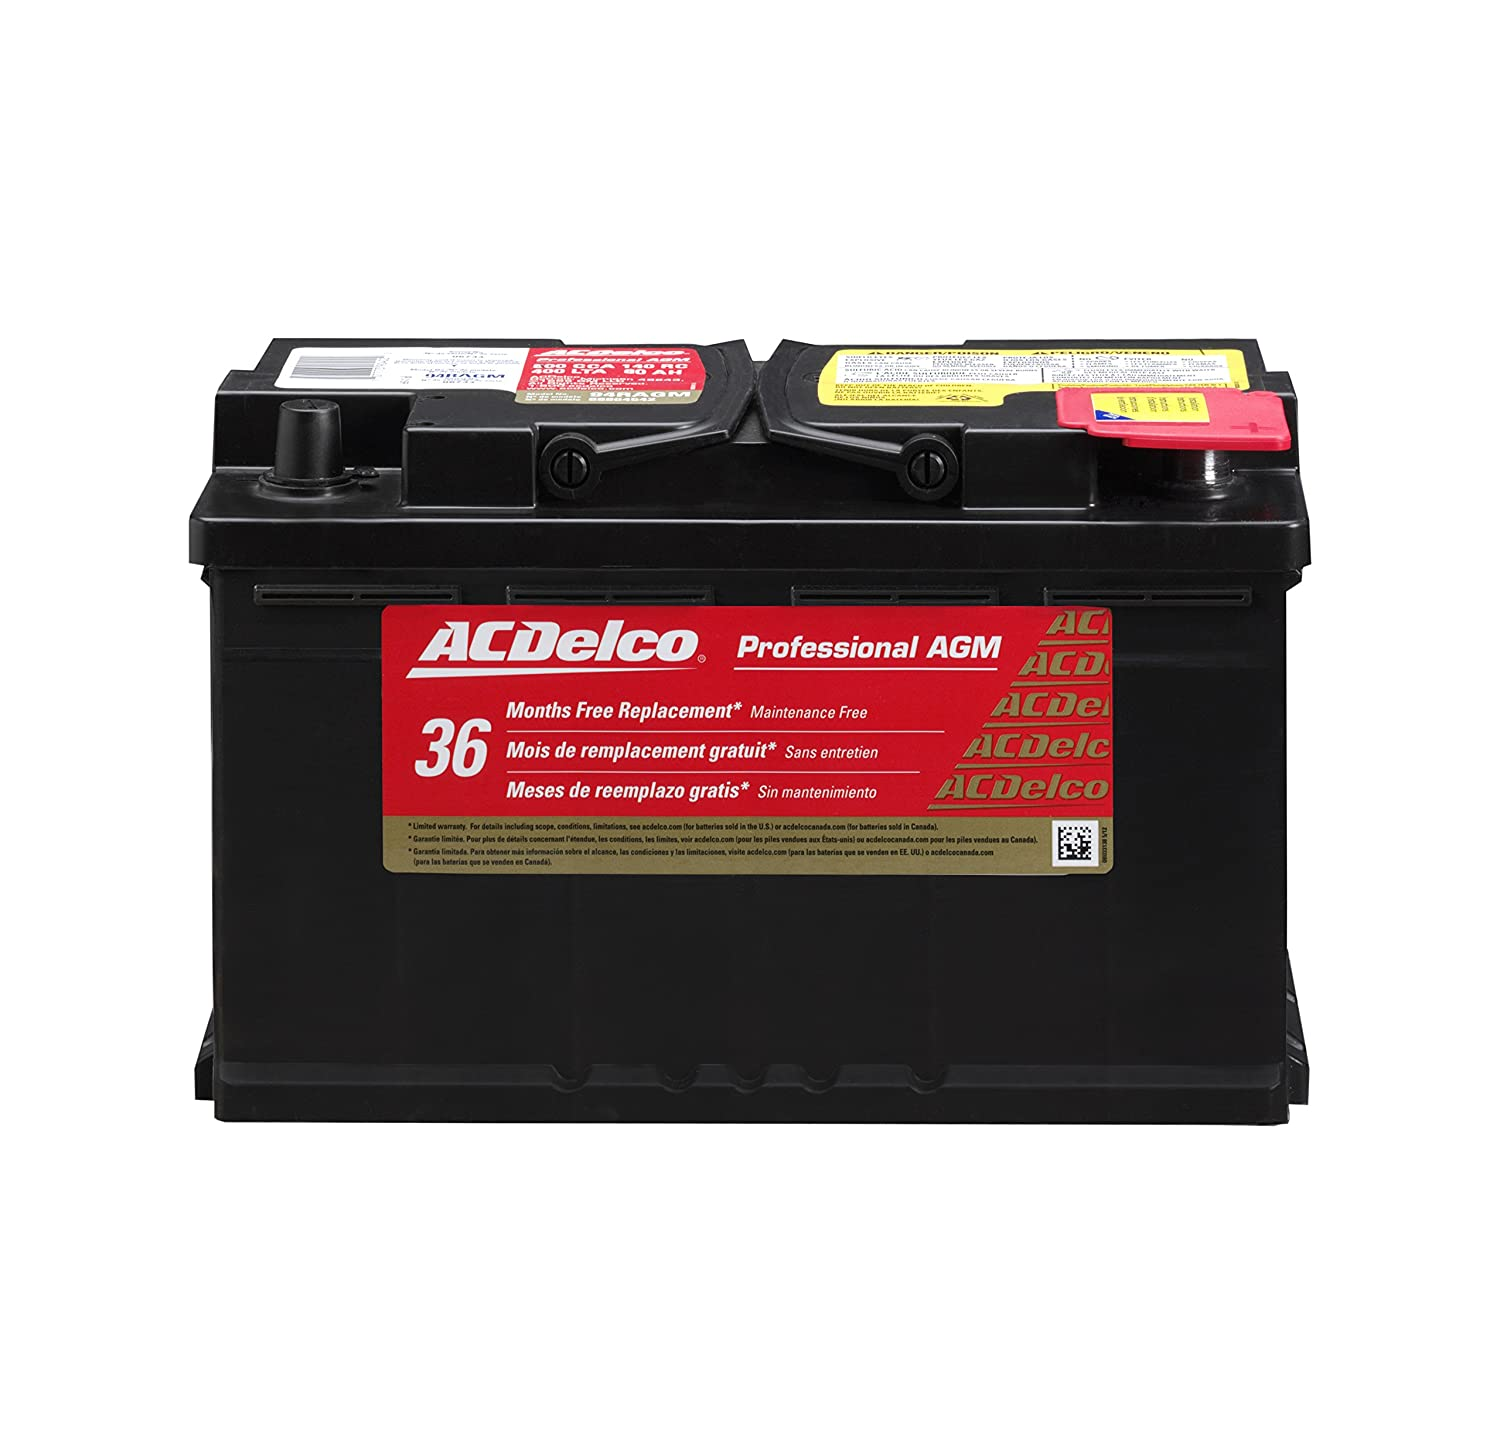 1. ACDelco 94RAGM Professional AGM Automotive BCI Group 94R Battery